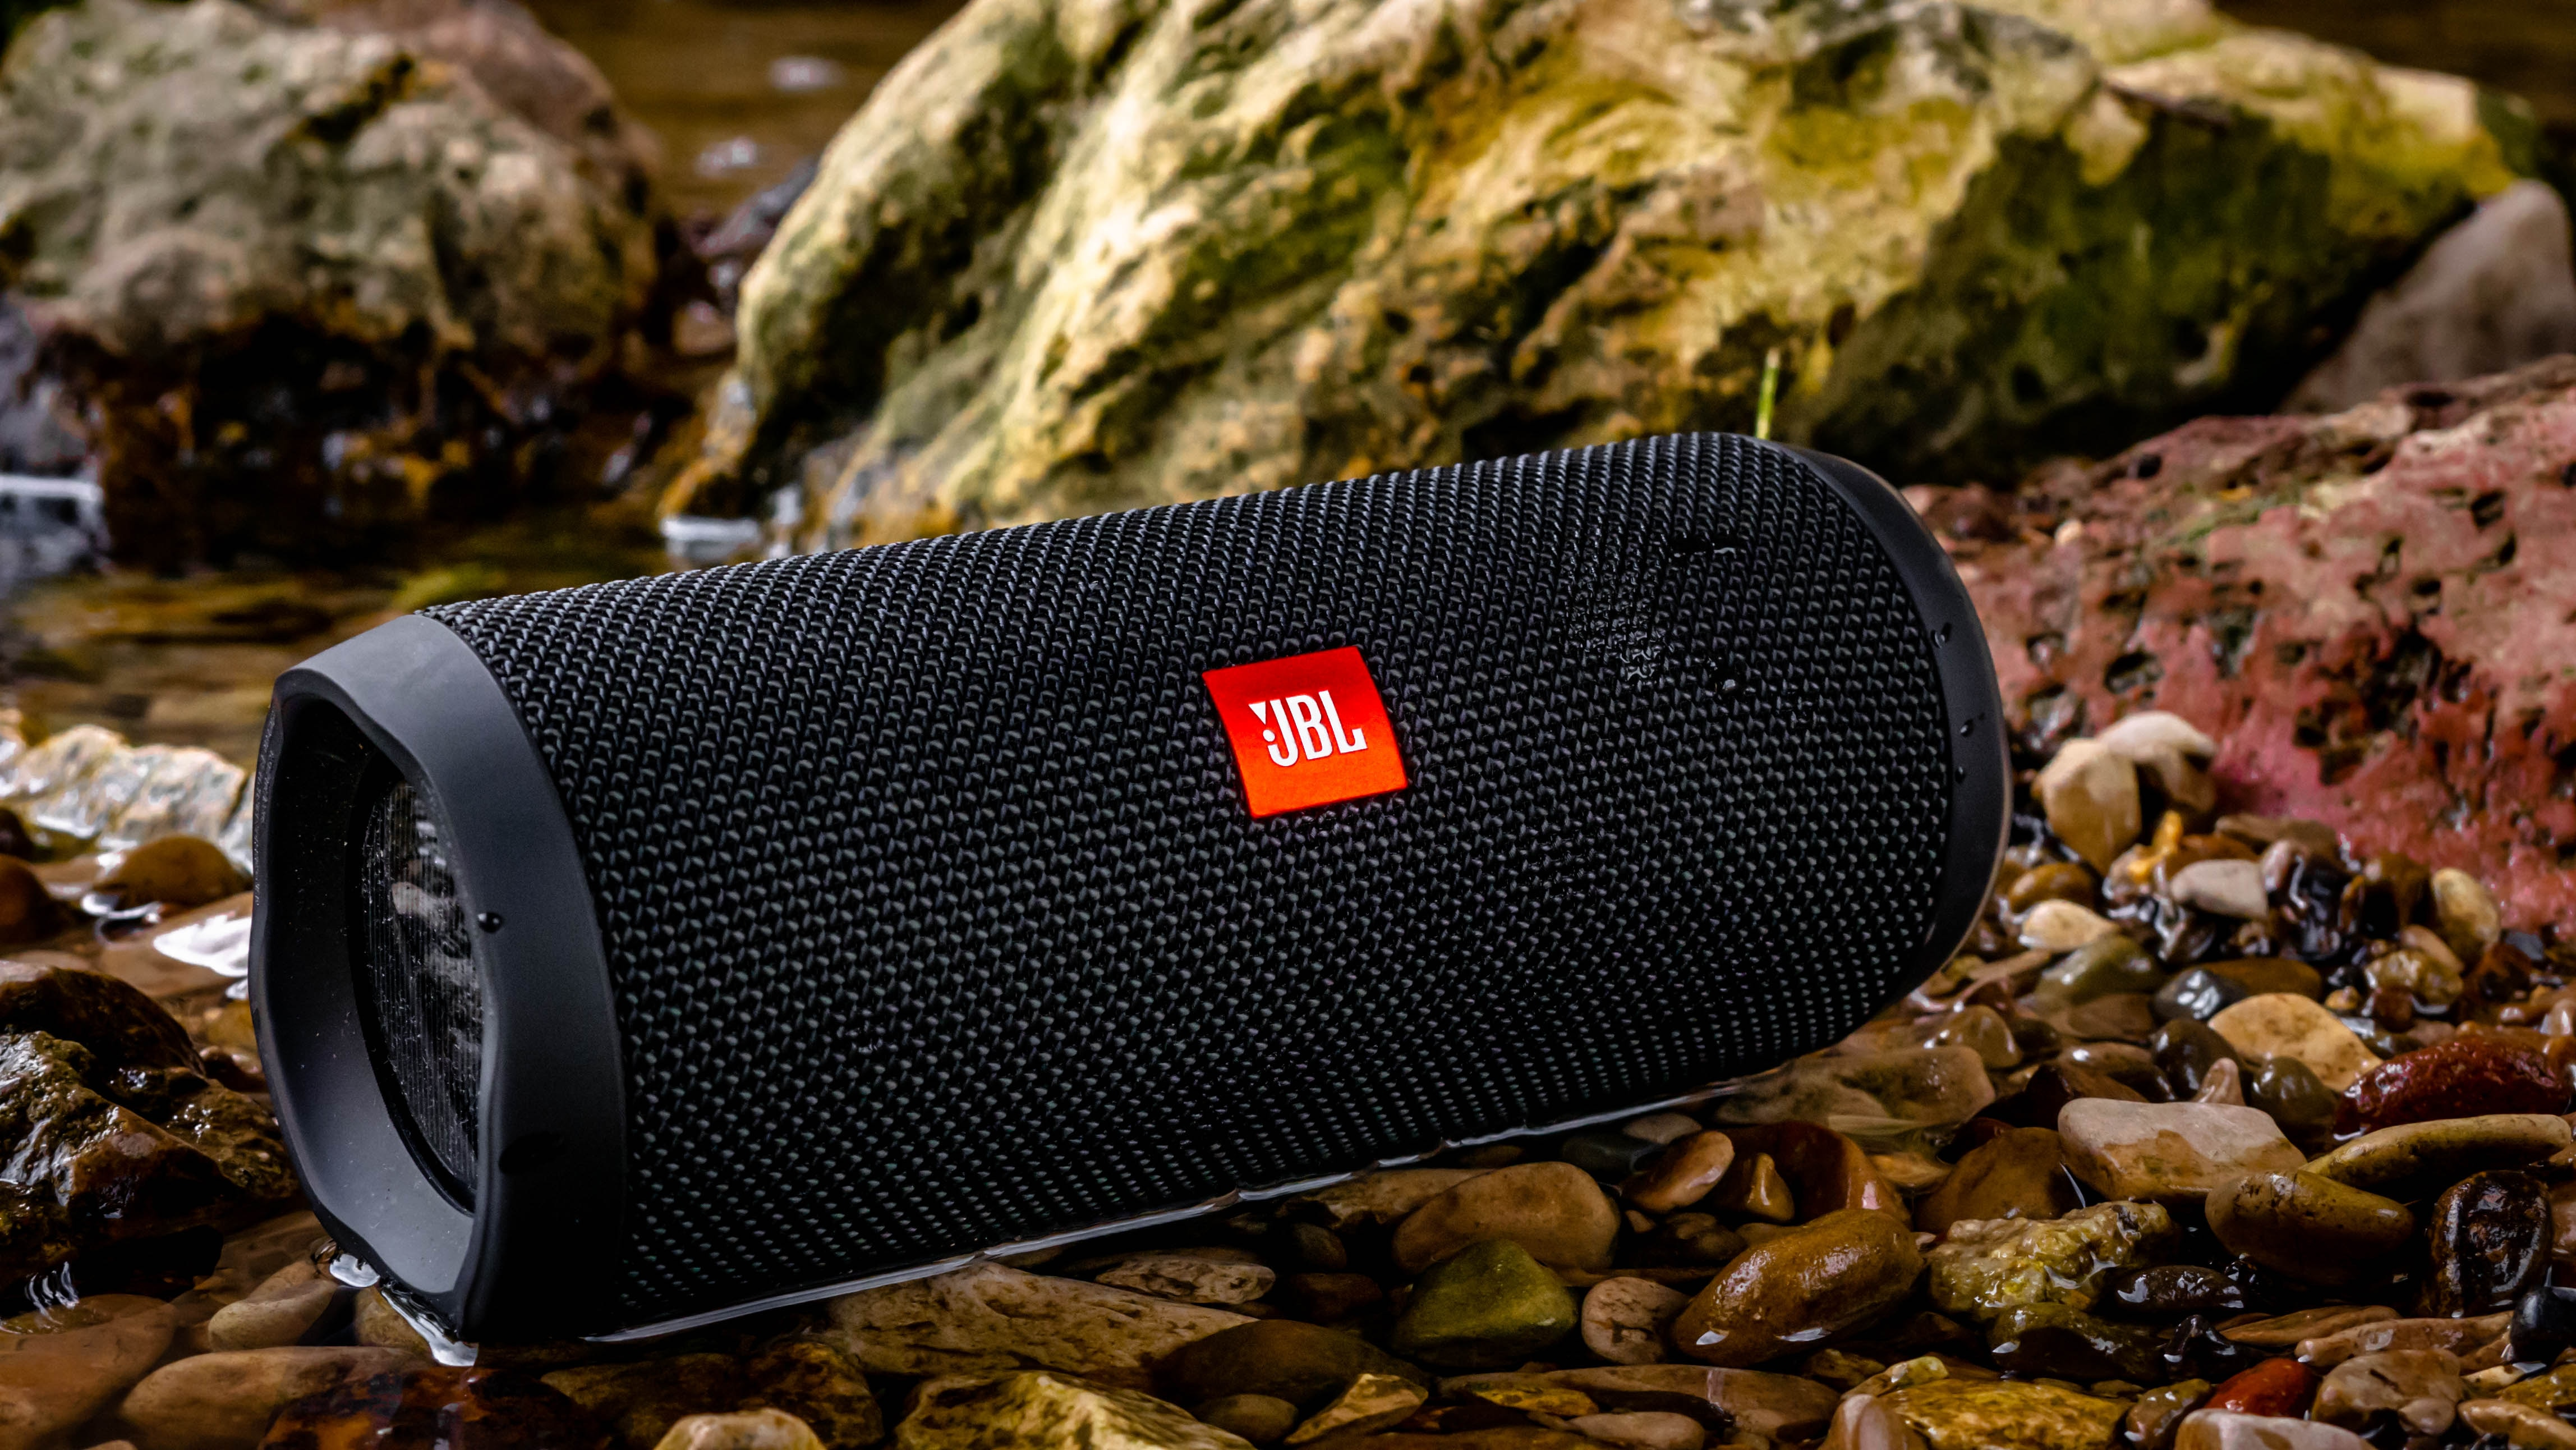 Best Waterproof Speaker for Stand up Paddle Boarding